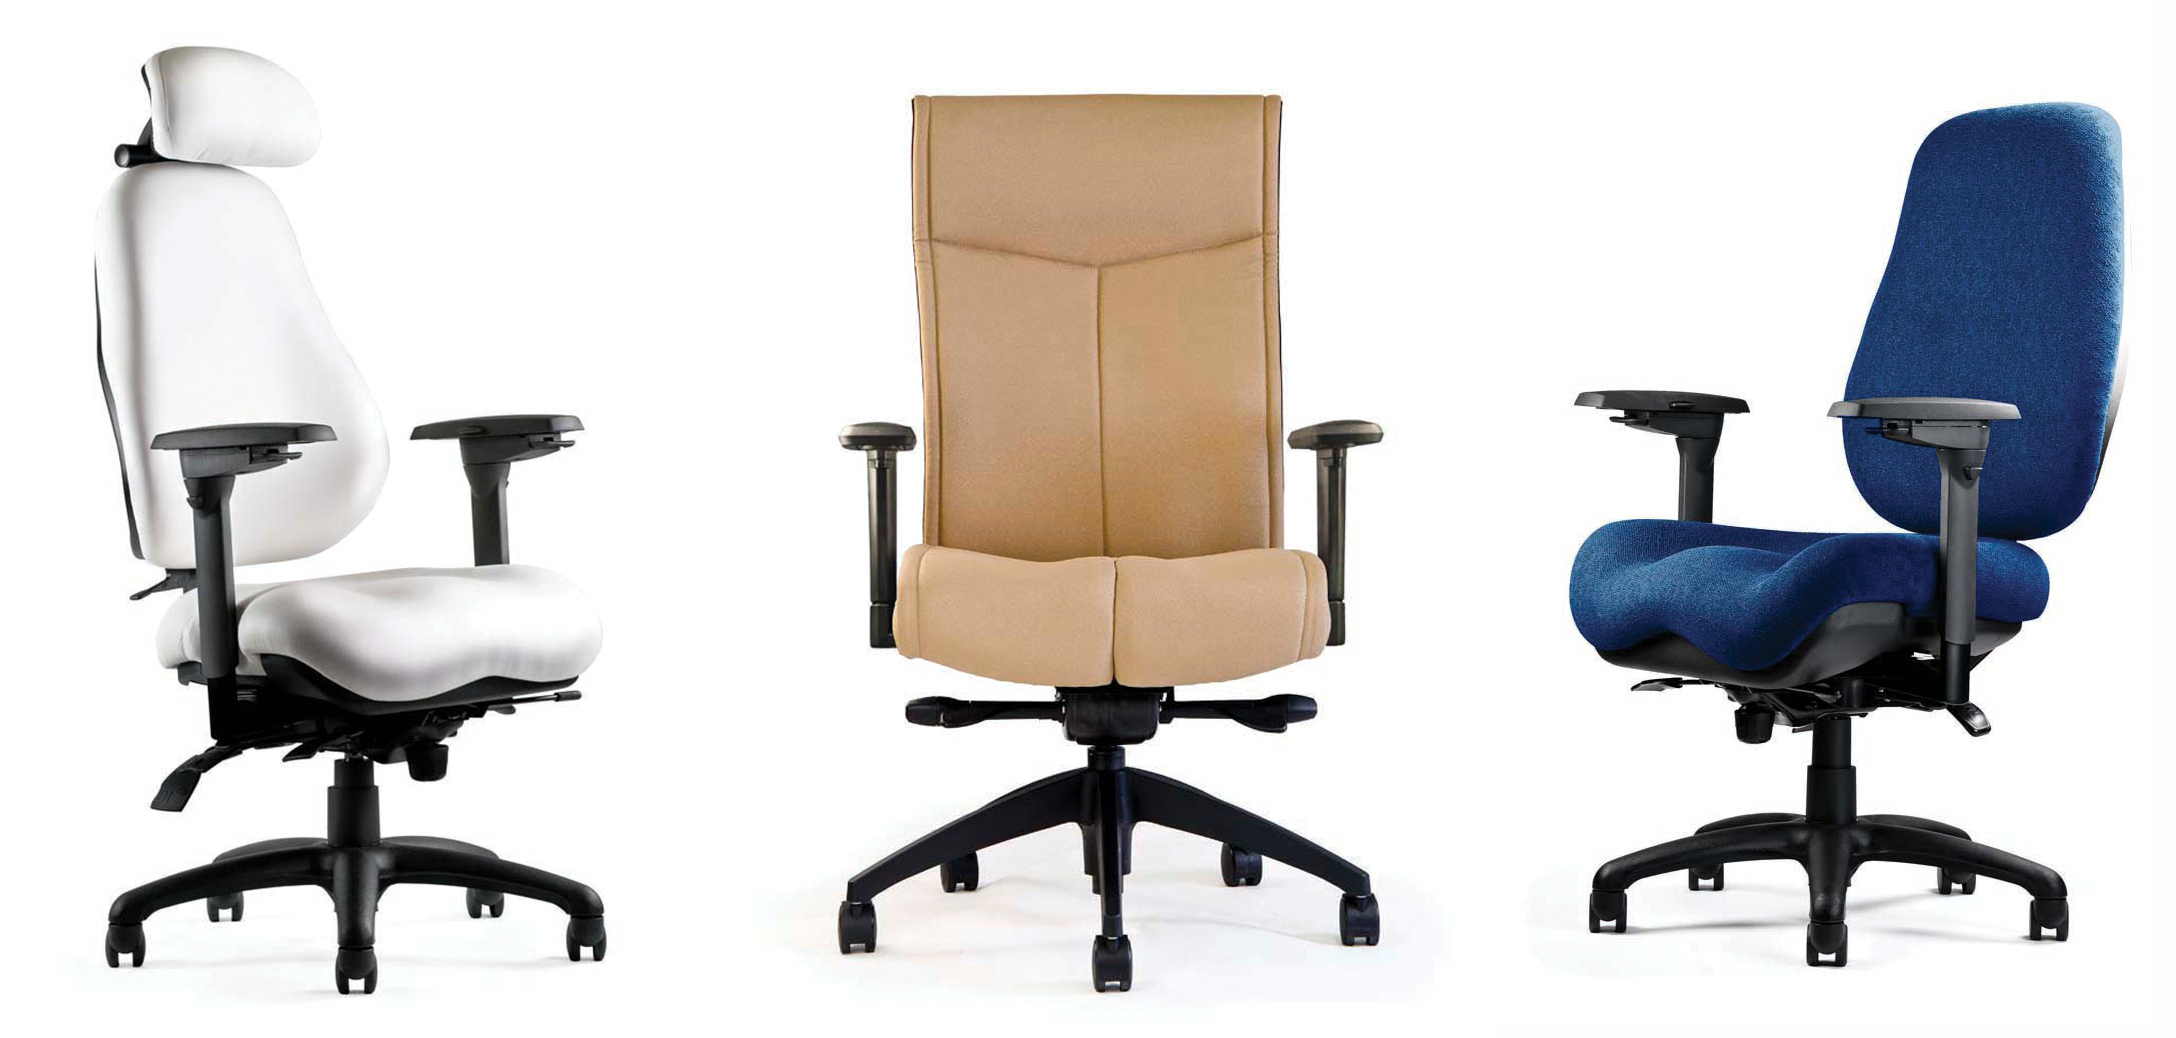 Neutral Posture offers seating systems with pressure-reducing contours and custom-fitting adjustments.